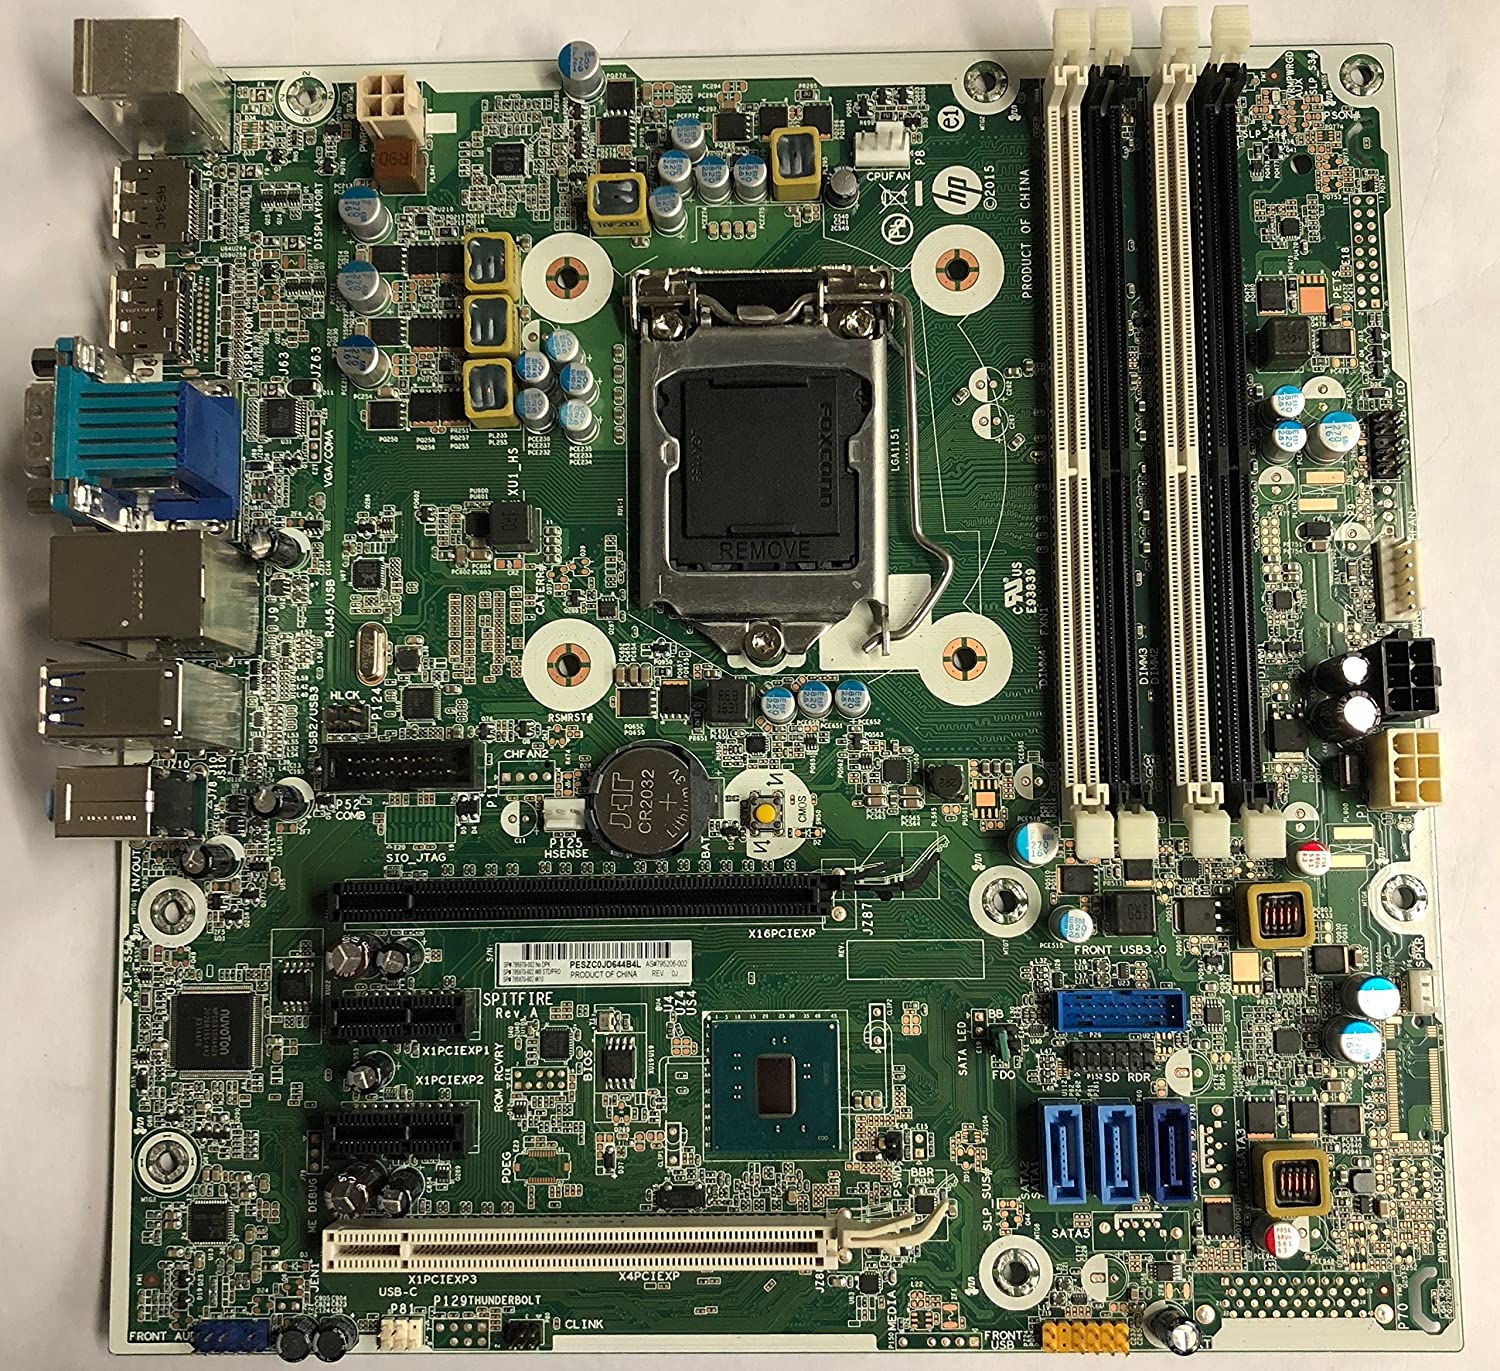 HP 795970-002 Motherboard (system processor board) - For the EliteDesk 800 G2 - For use in Small Form Factor (SFF) PC`s